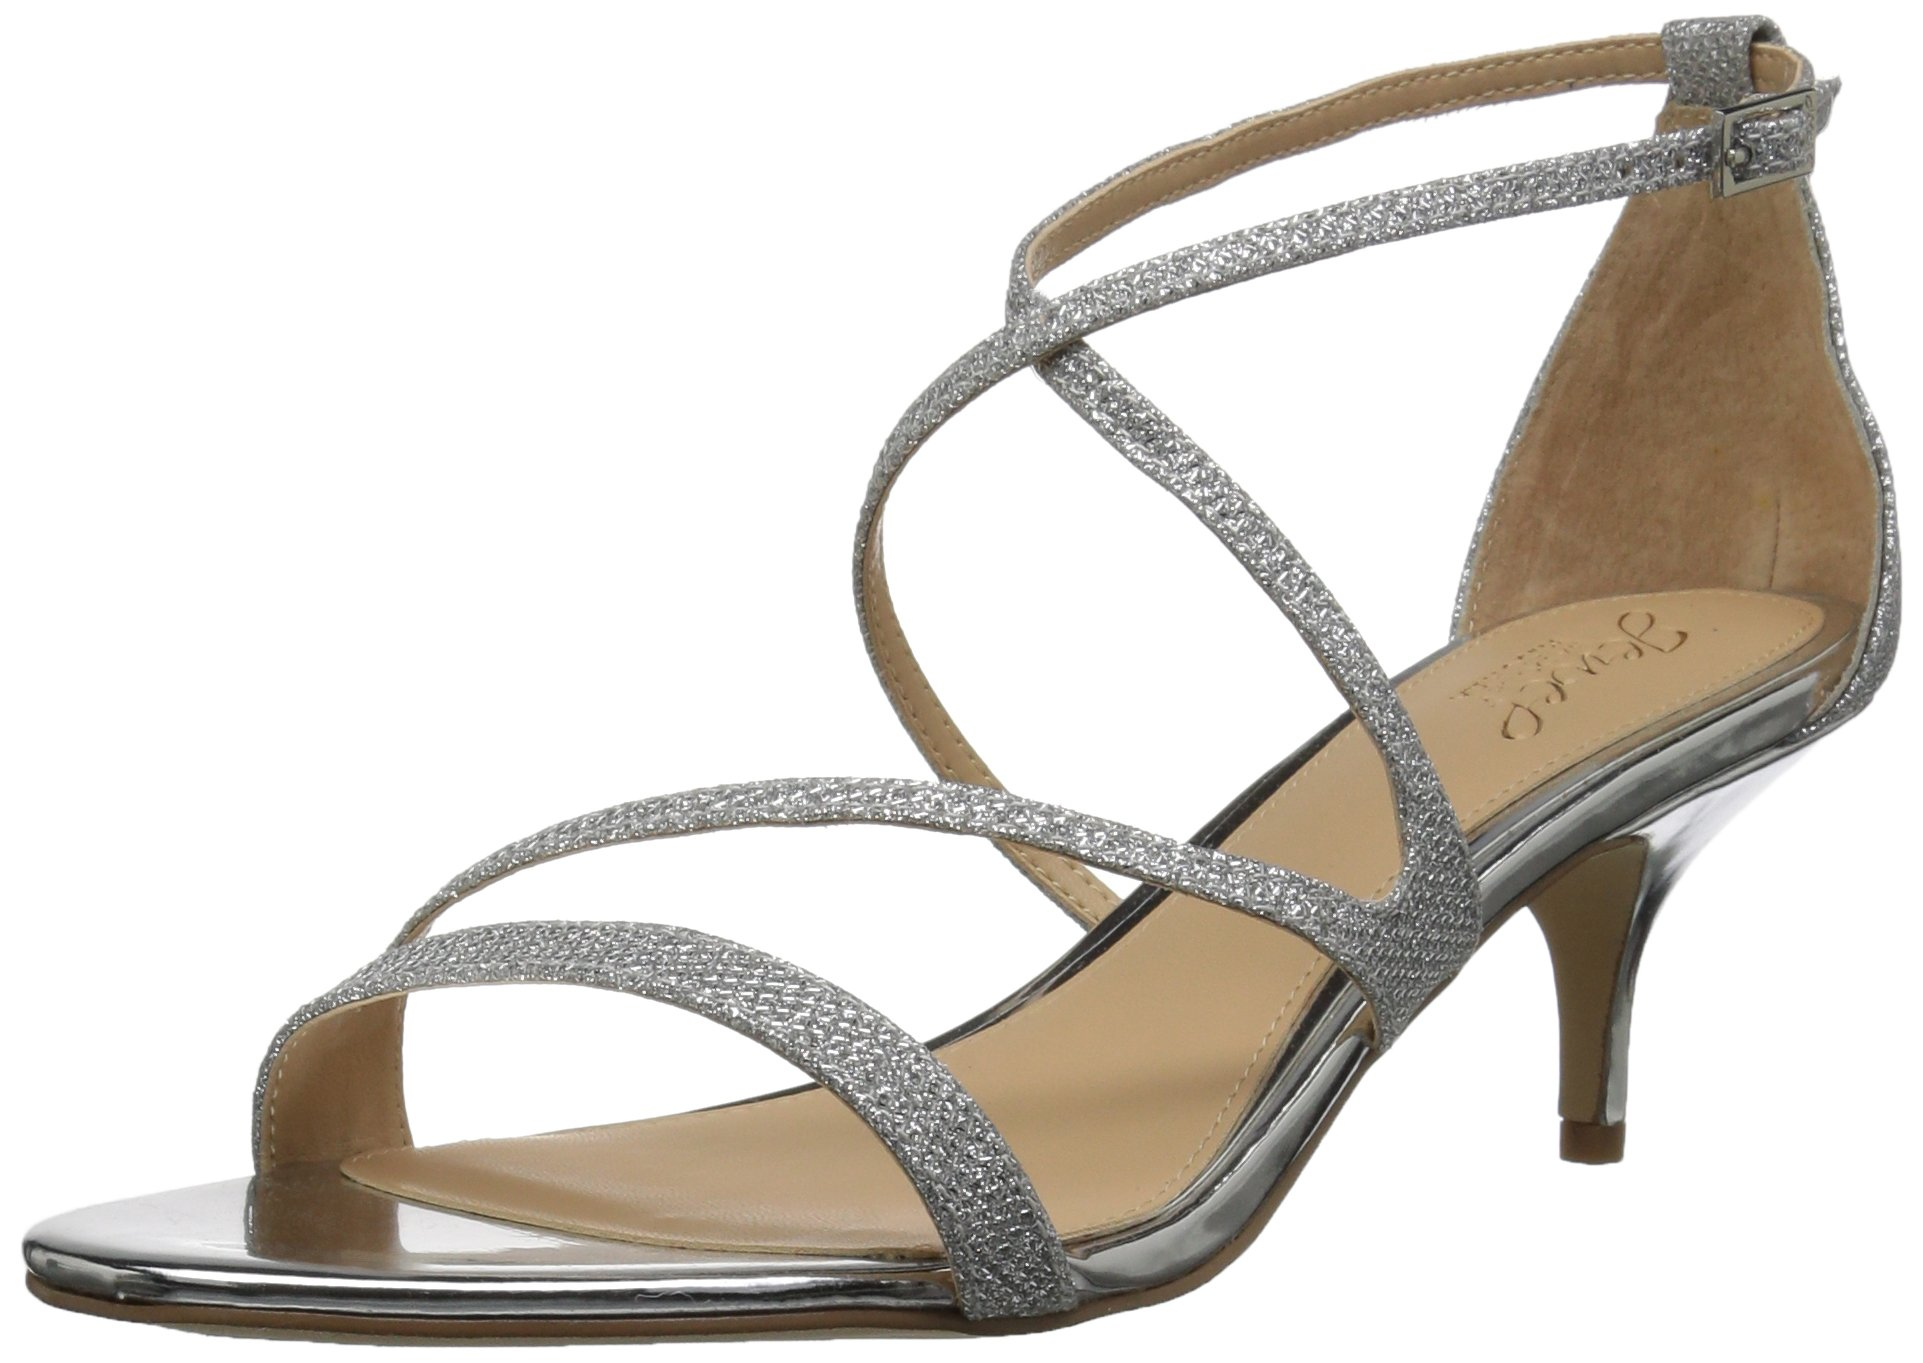 Badgley Mischka Jewel Women's Gal Heeled Sandal, Silver, 10 Medium US